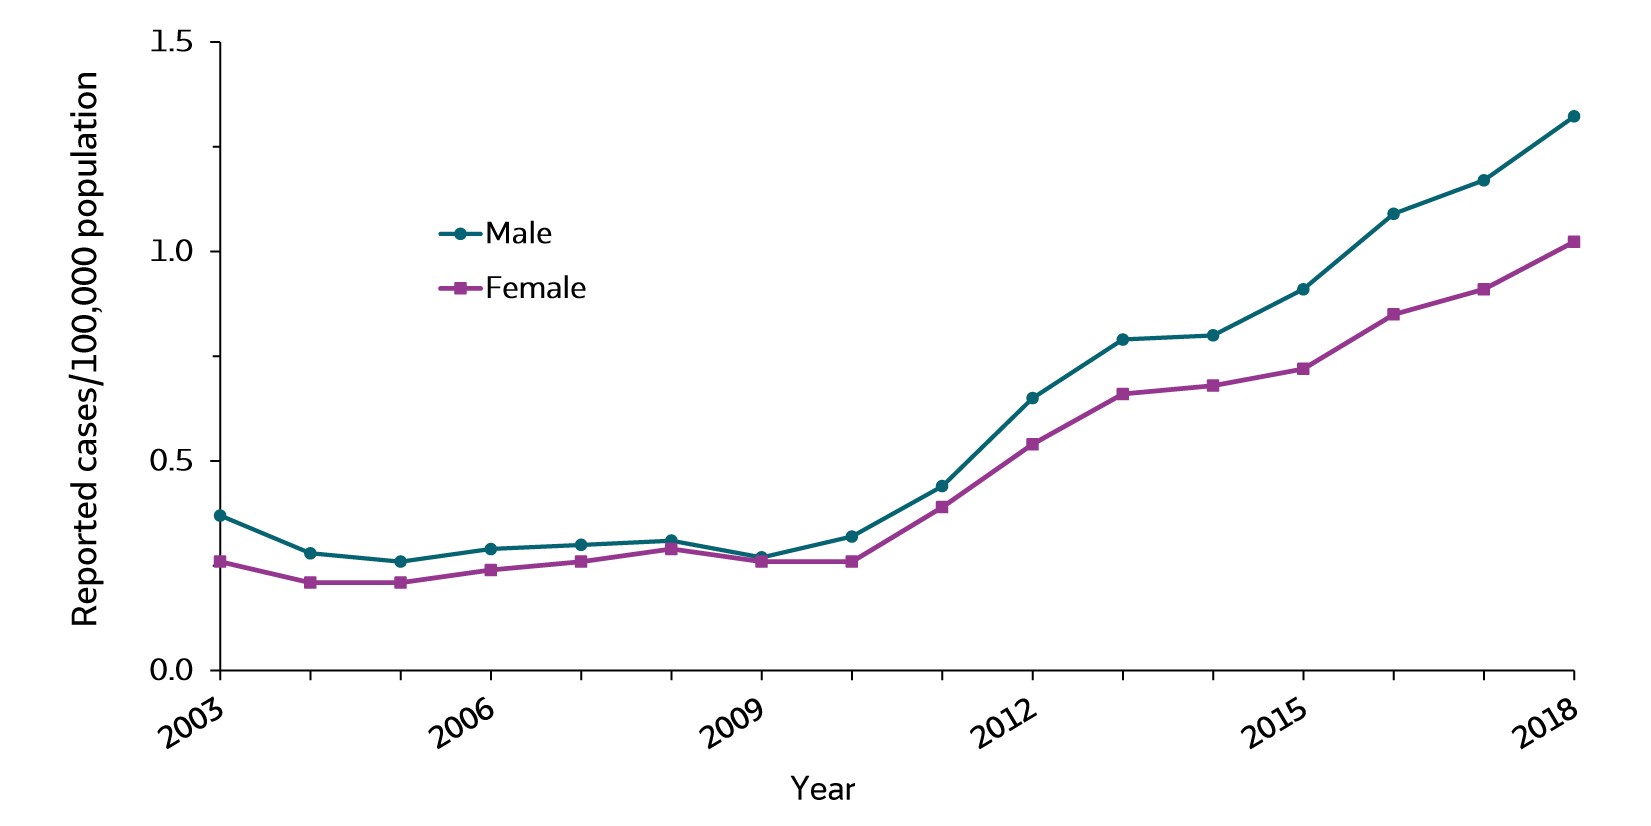 Figure 3.5. This line graph displays trends in rates of acute hepatitis C for males and females from 2003 through 2018. From 2010 through 2020, the rates of acute hepatitis C have increased for both males and females.  Rates for males were higher than rates for females for all years except 2008 and 2009 when the rates were close.